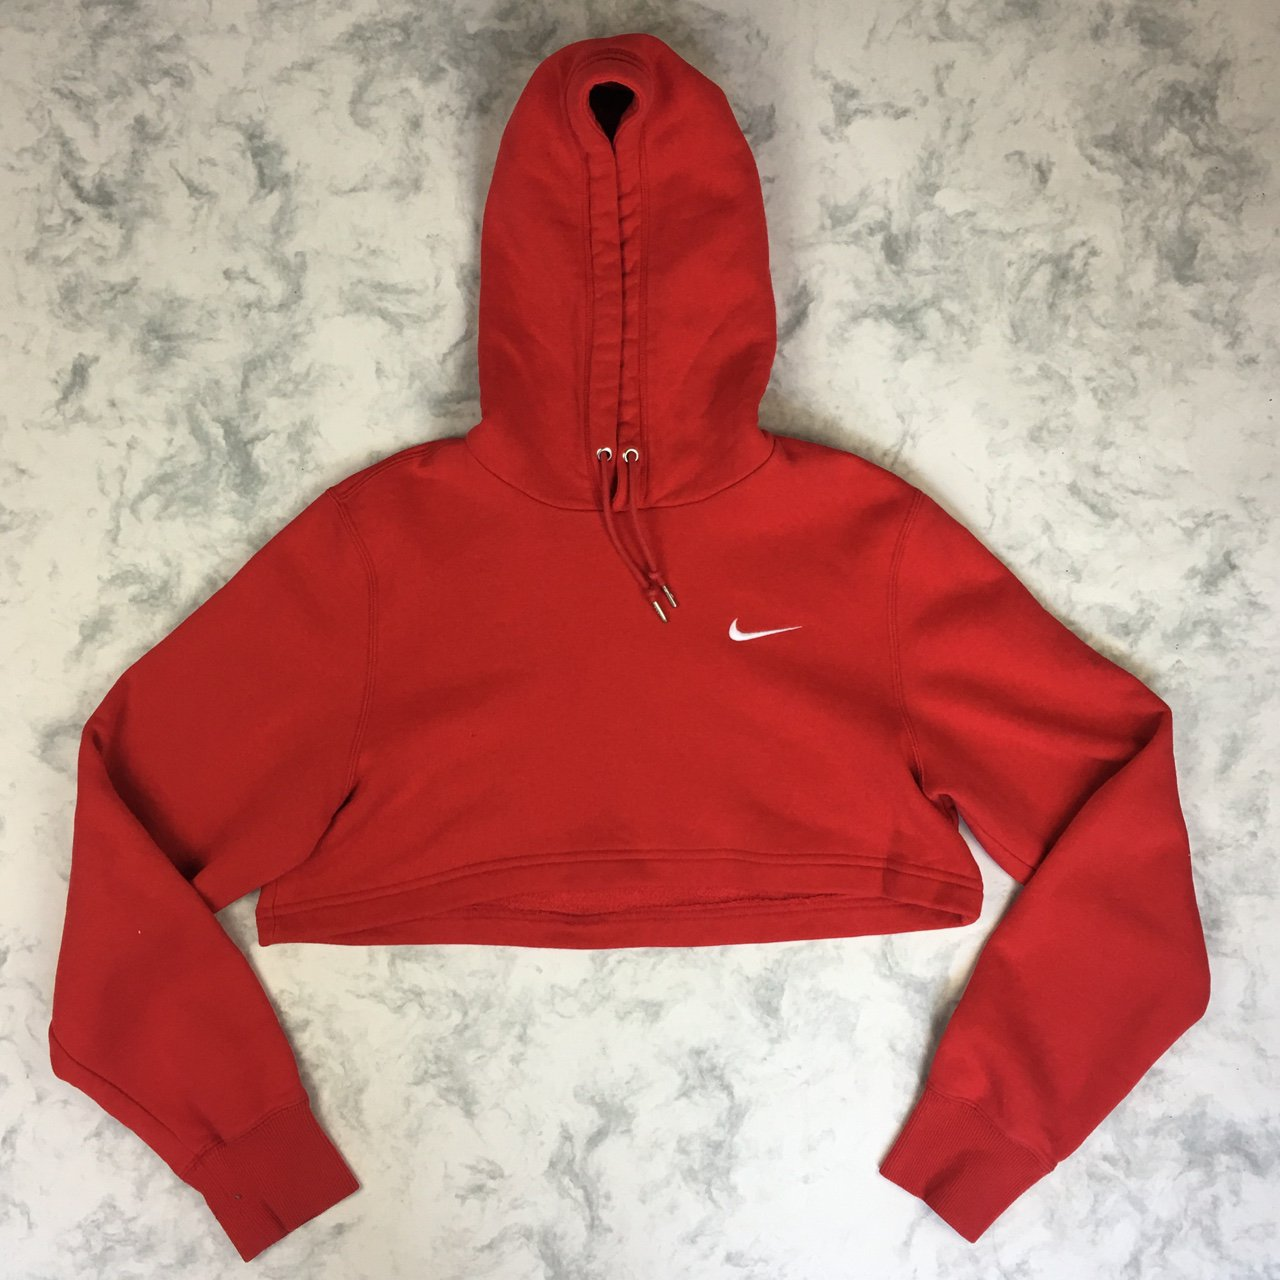 971c1f709202 Cropped red Nike hoodie Perfect condition - Depop